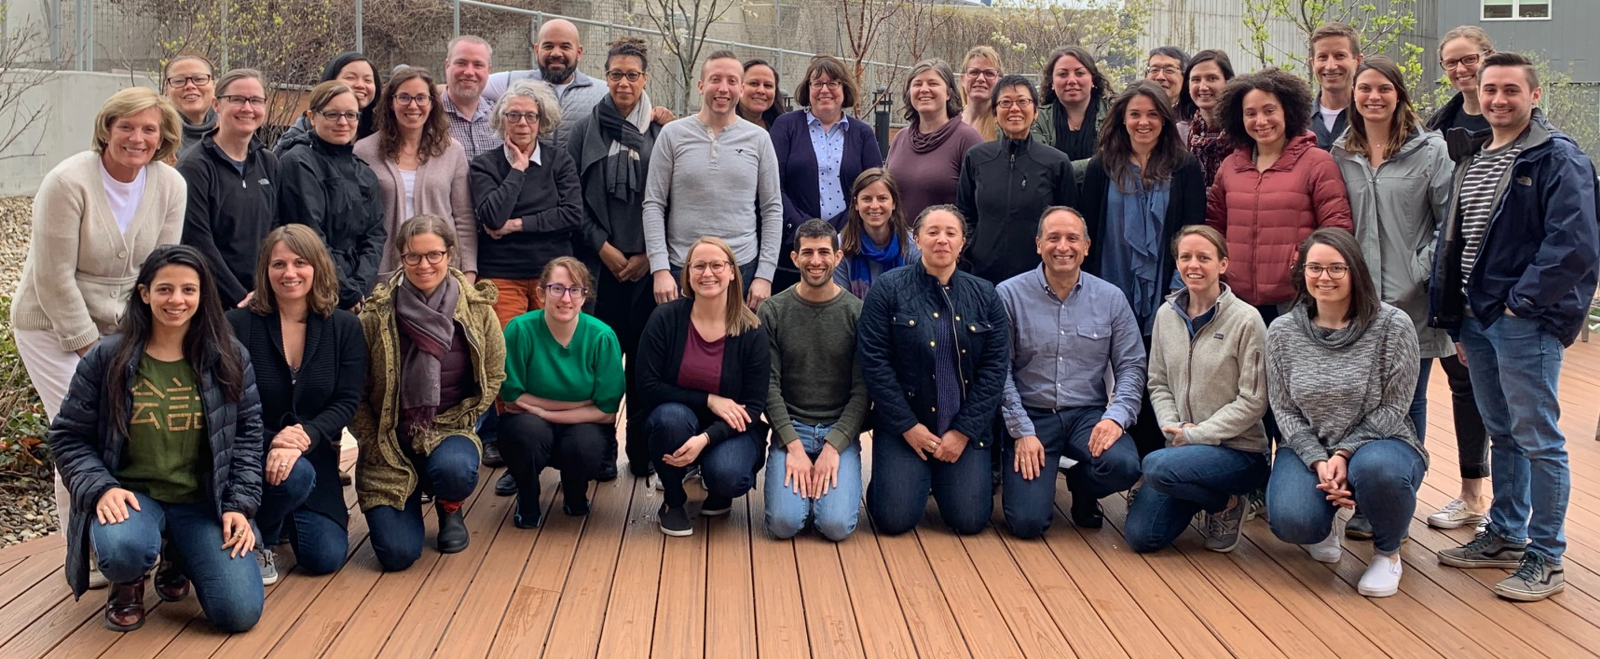 Group photo of Barr Foundation staff at Pau Arts Center in Boston's Chinatown for 2019 staff retreat